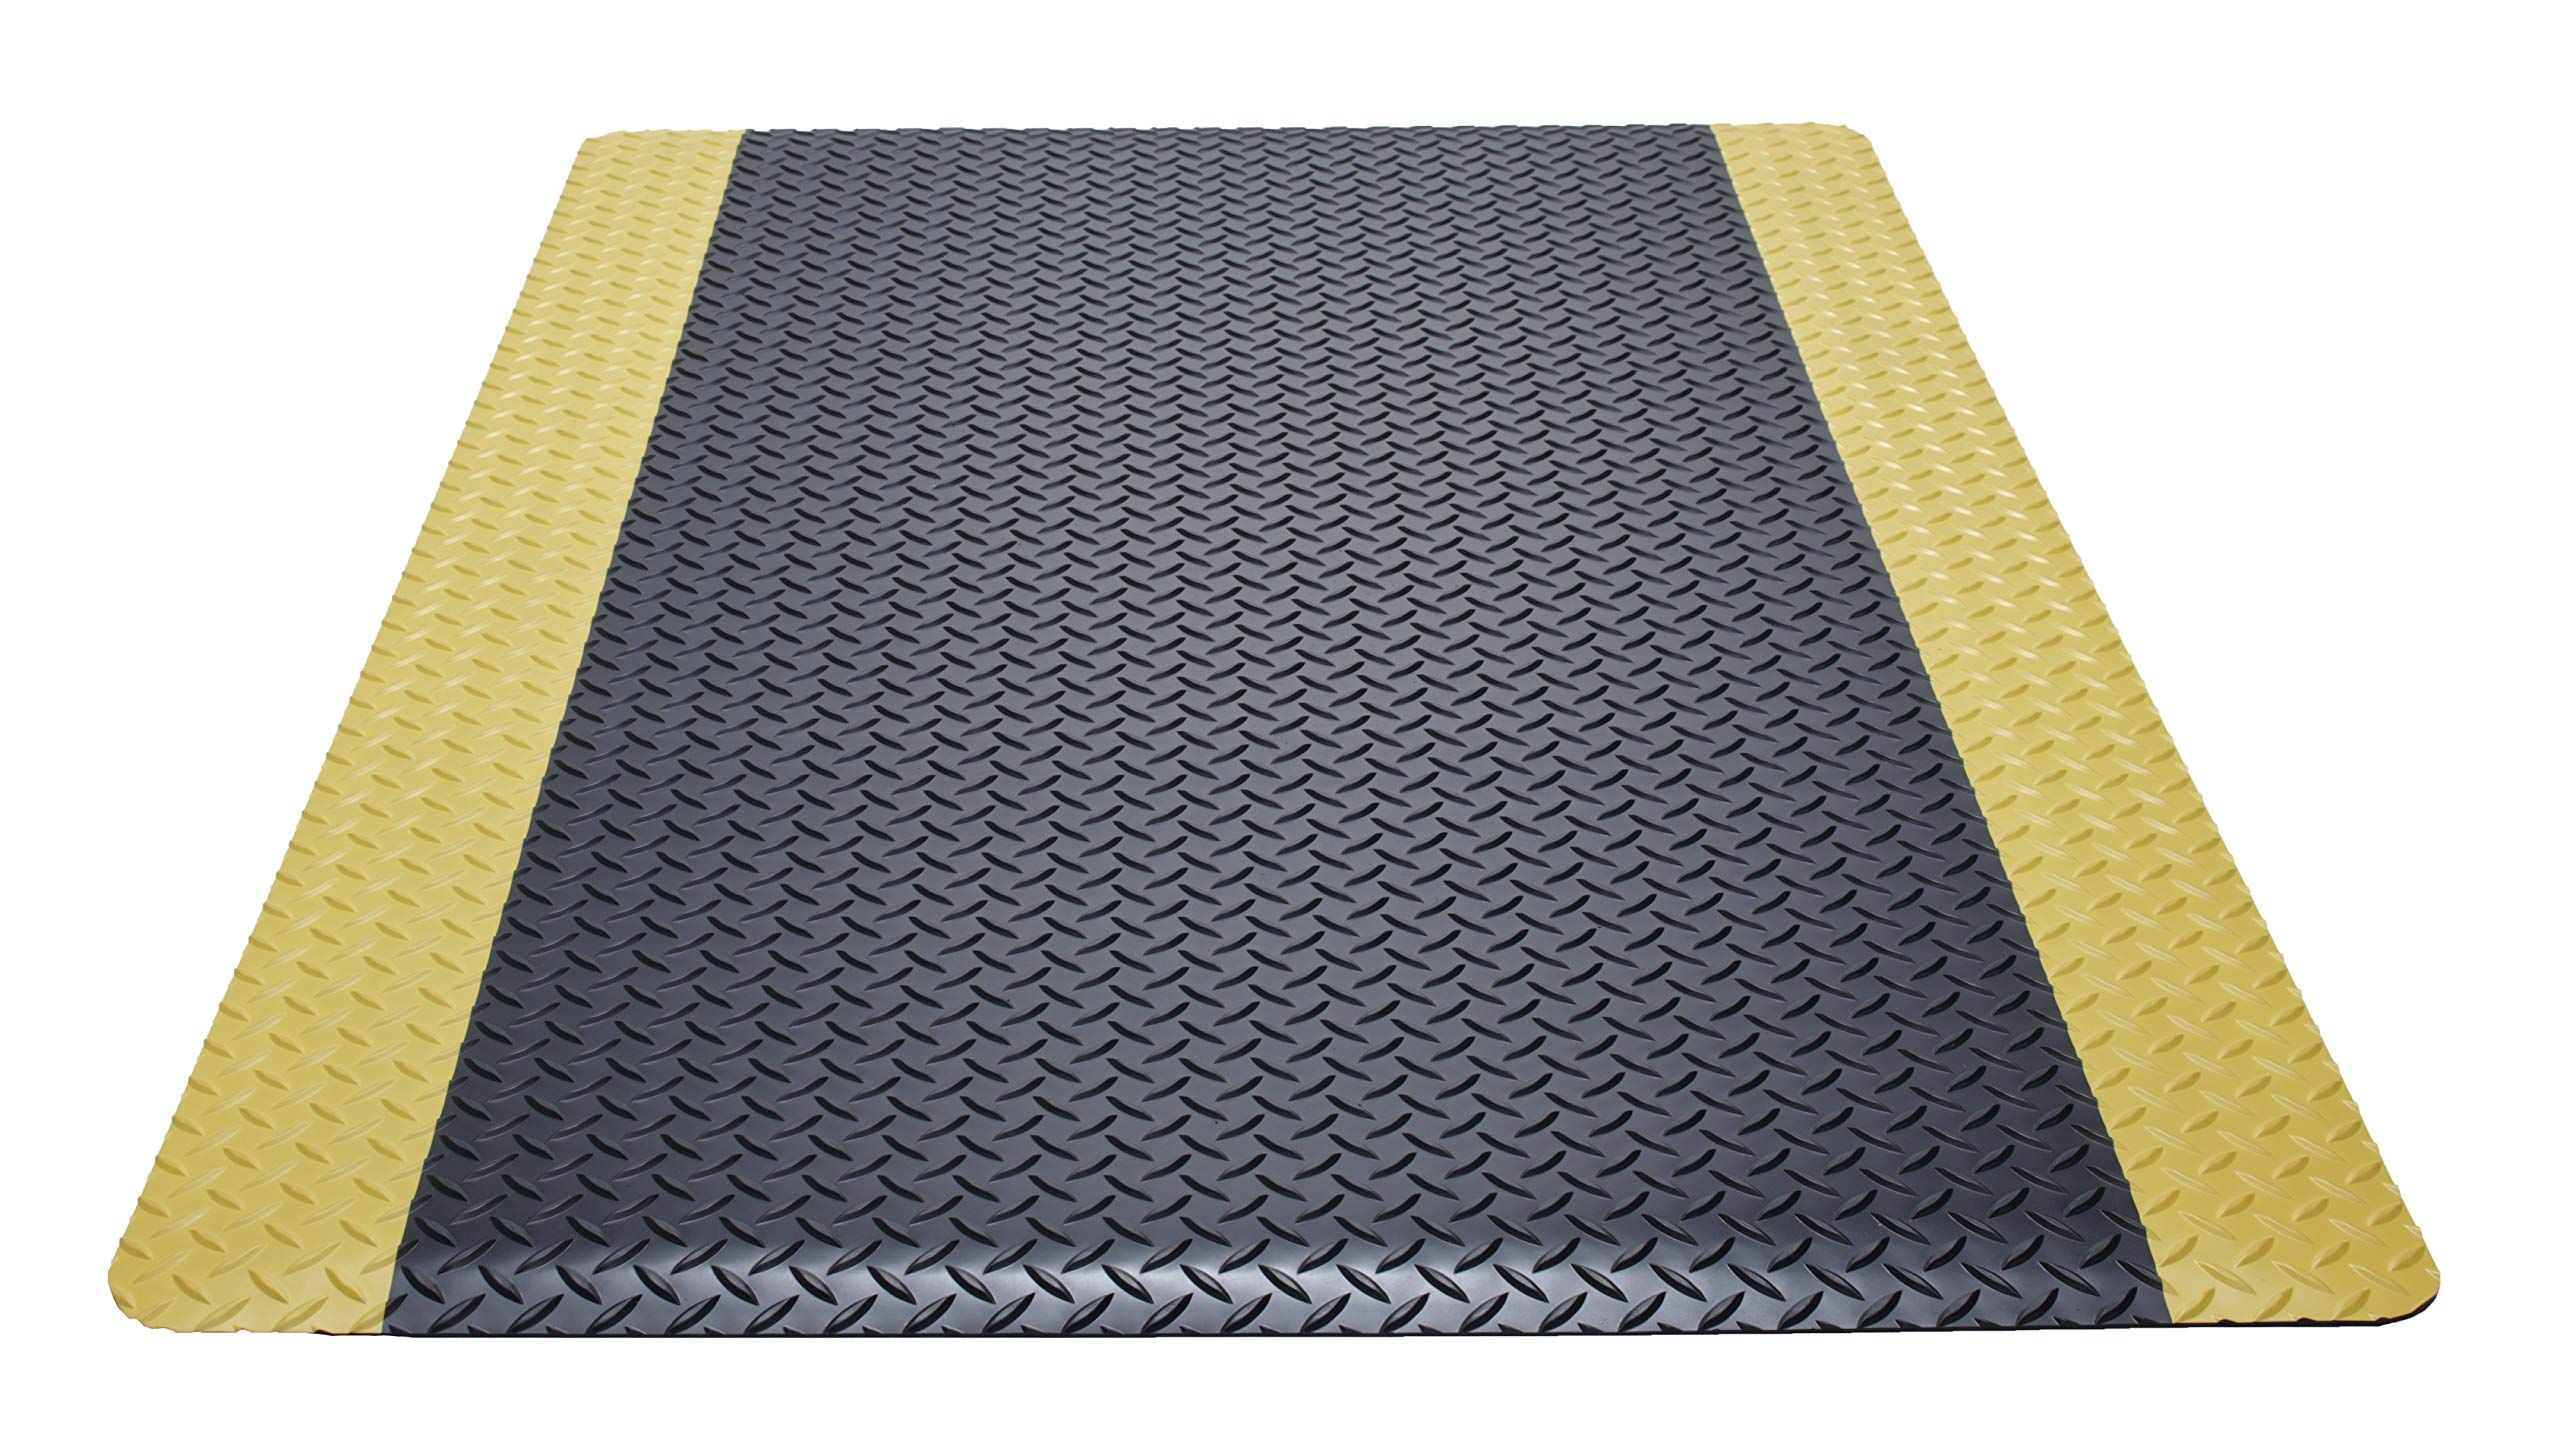 Guardian Safe Step Anti Fatigue Floor Mat Vinyl 3 X12 Blk Ylw For More Information Visi Anti Fatigue Flooring Fatigue Flooring Anti Fatigue Floor Mats